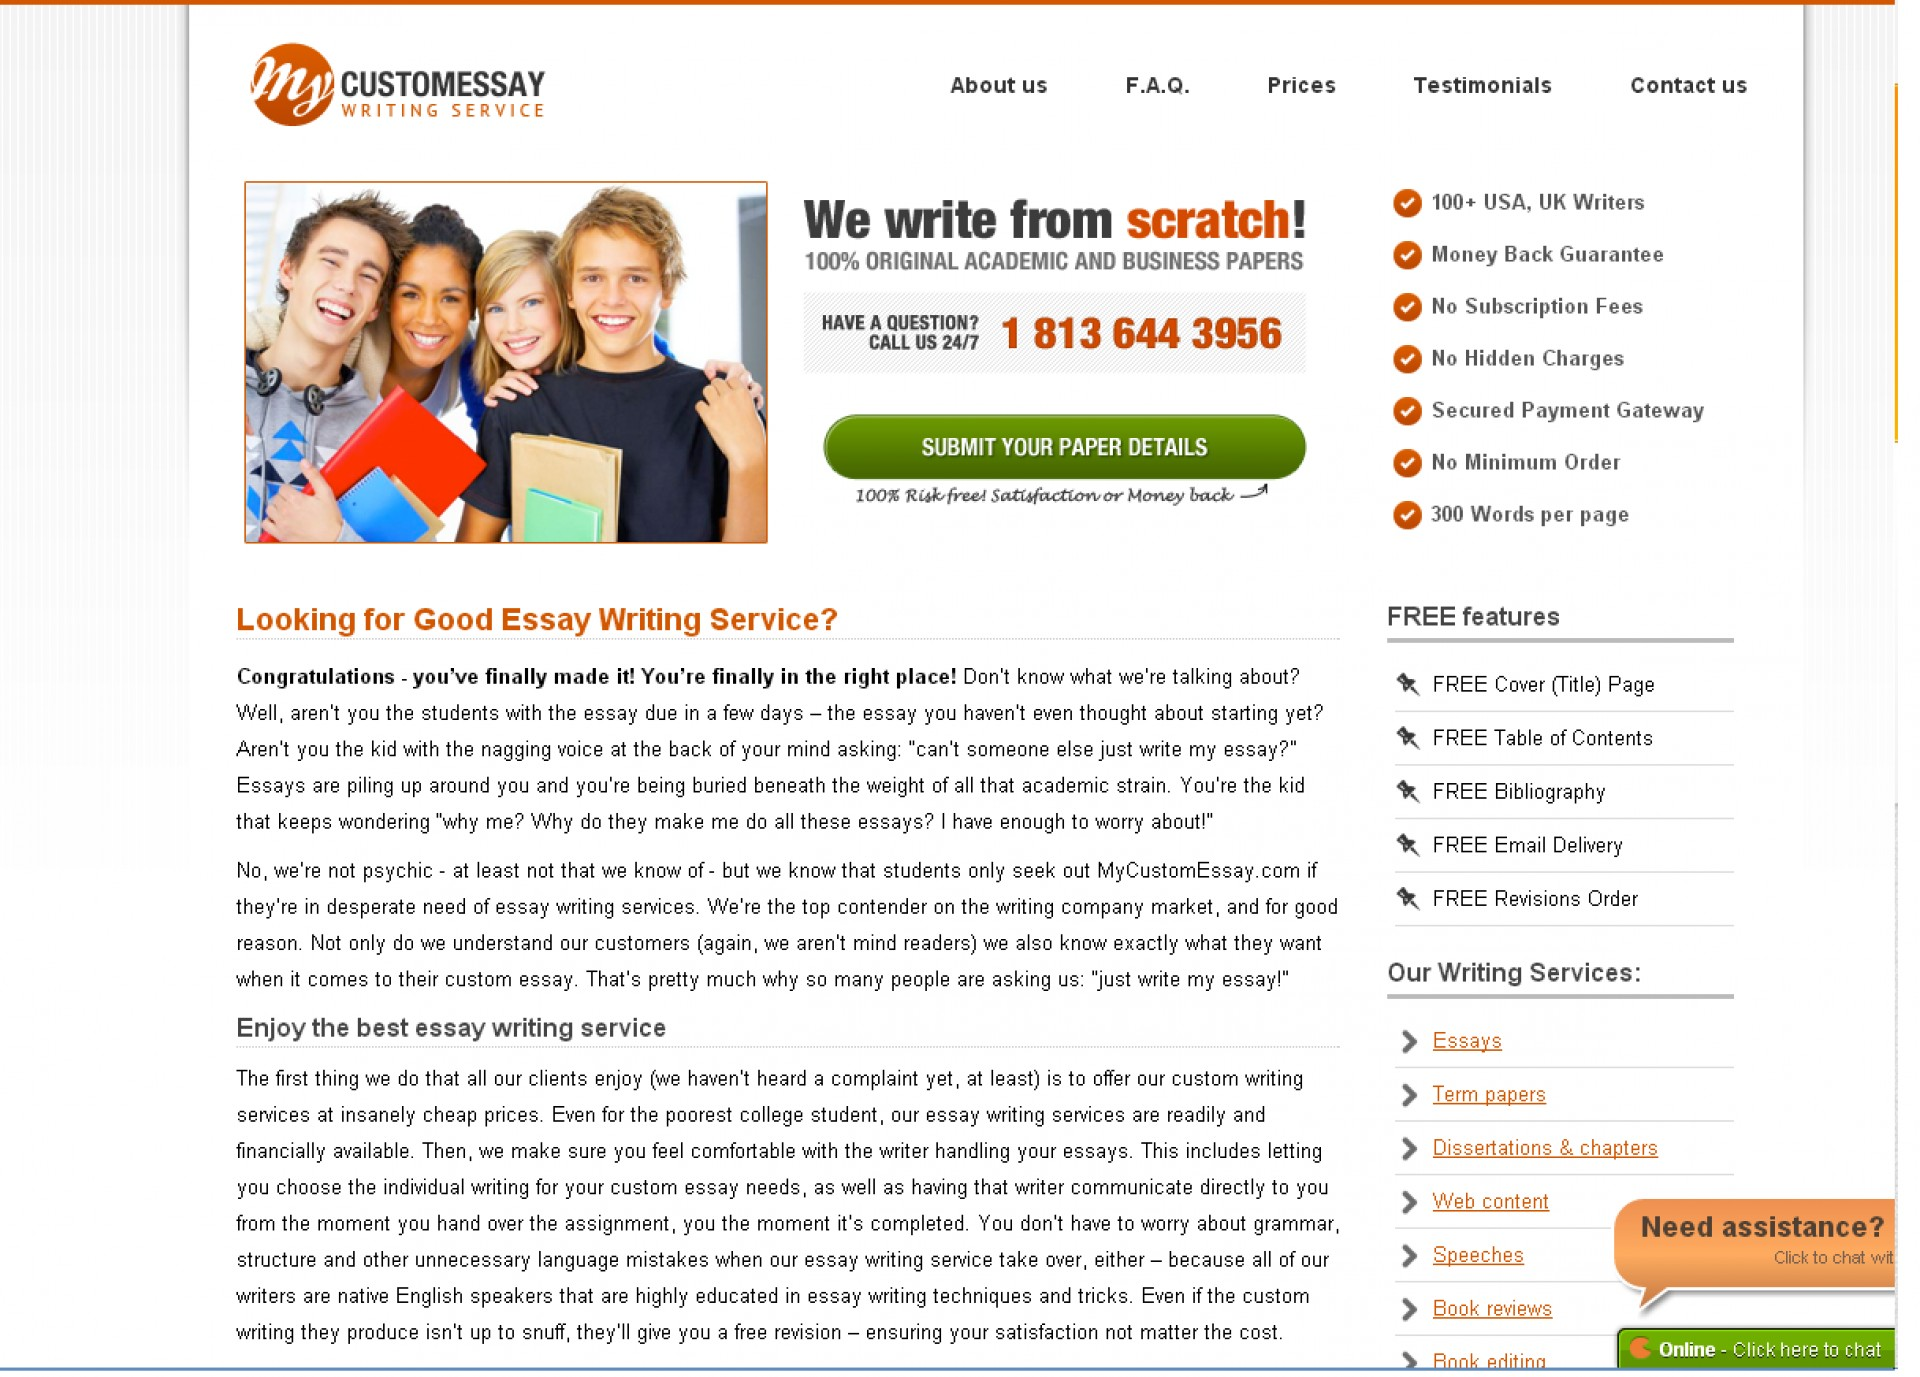 015 Essay Writing Service Reddit Best Custom Services Cheap Mycustom Fantastic 1920